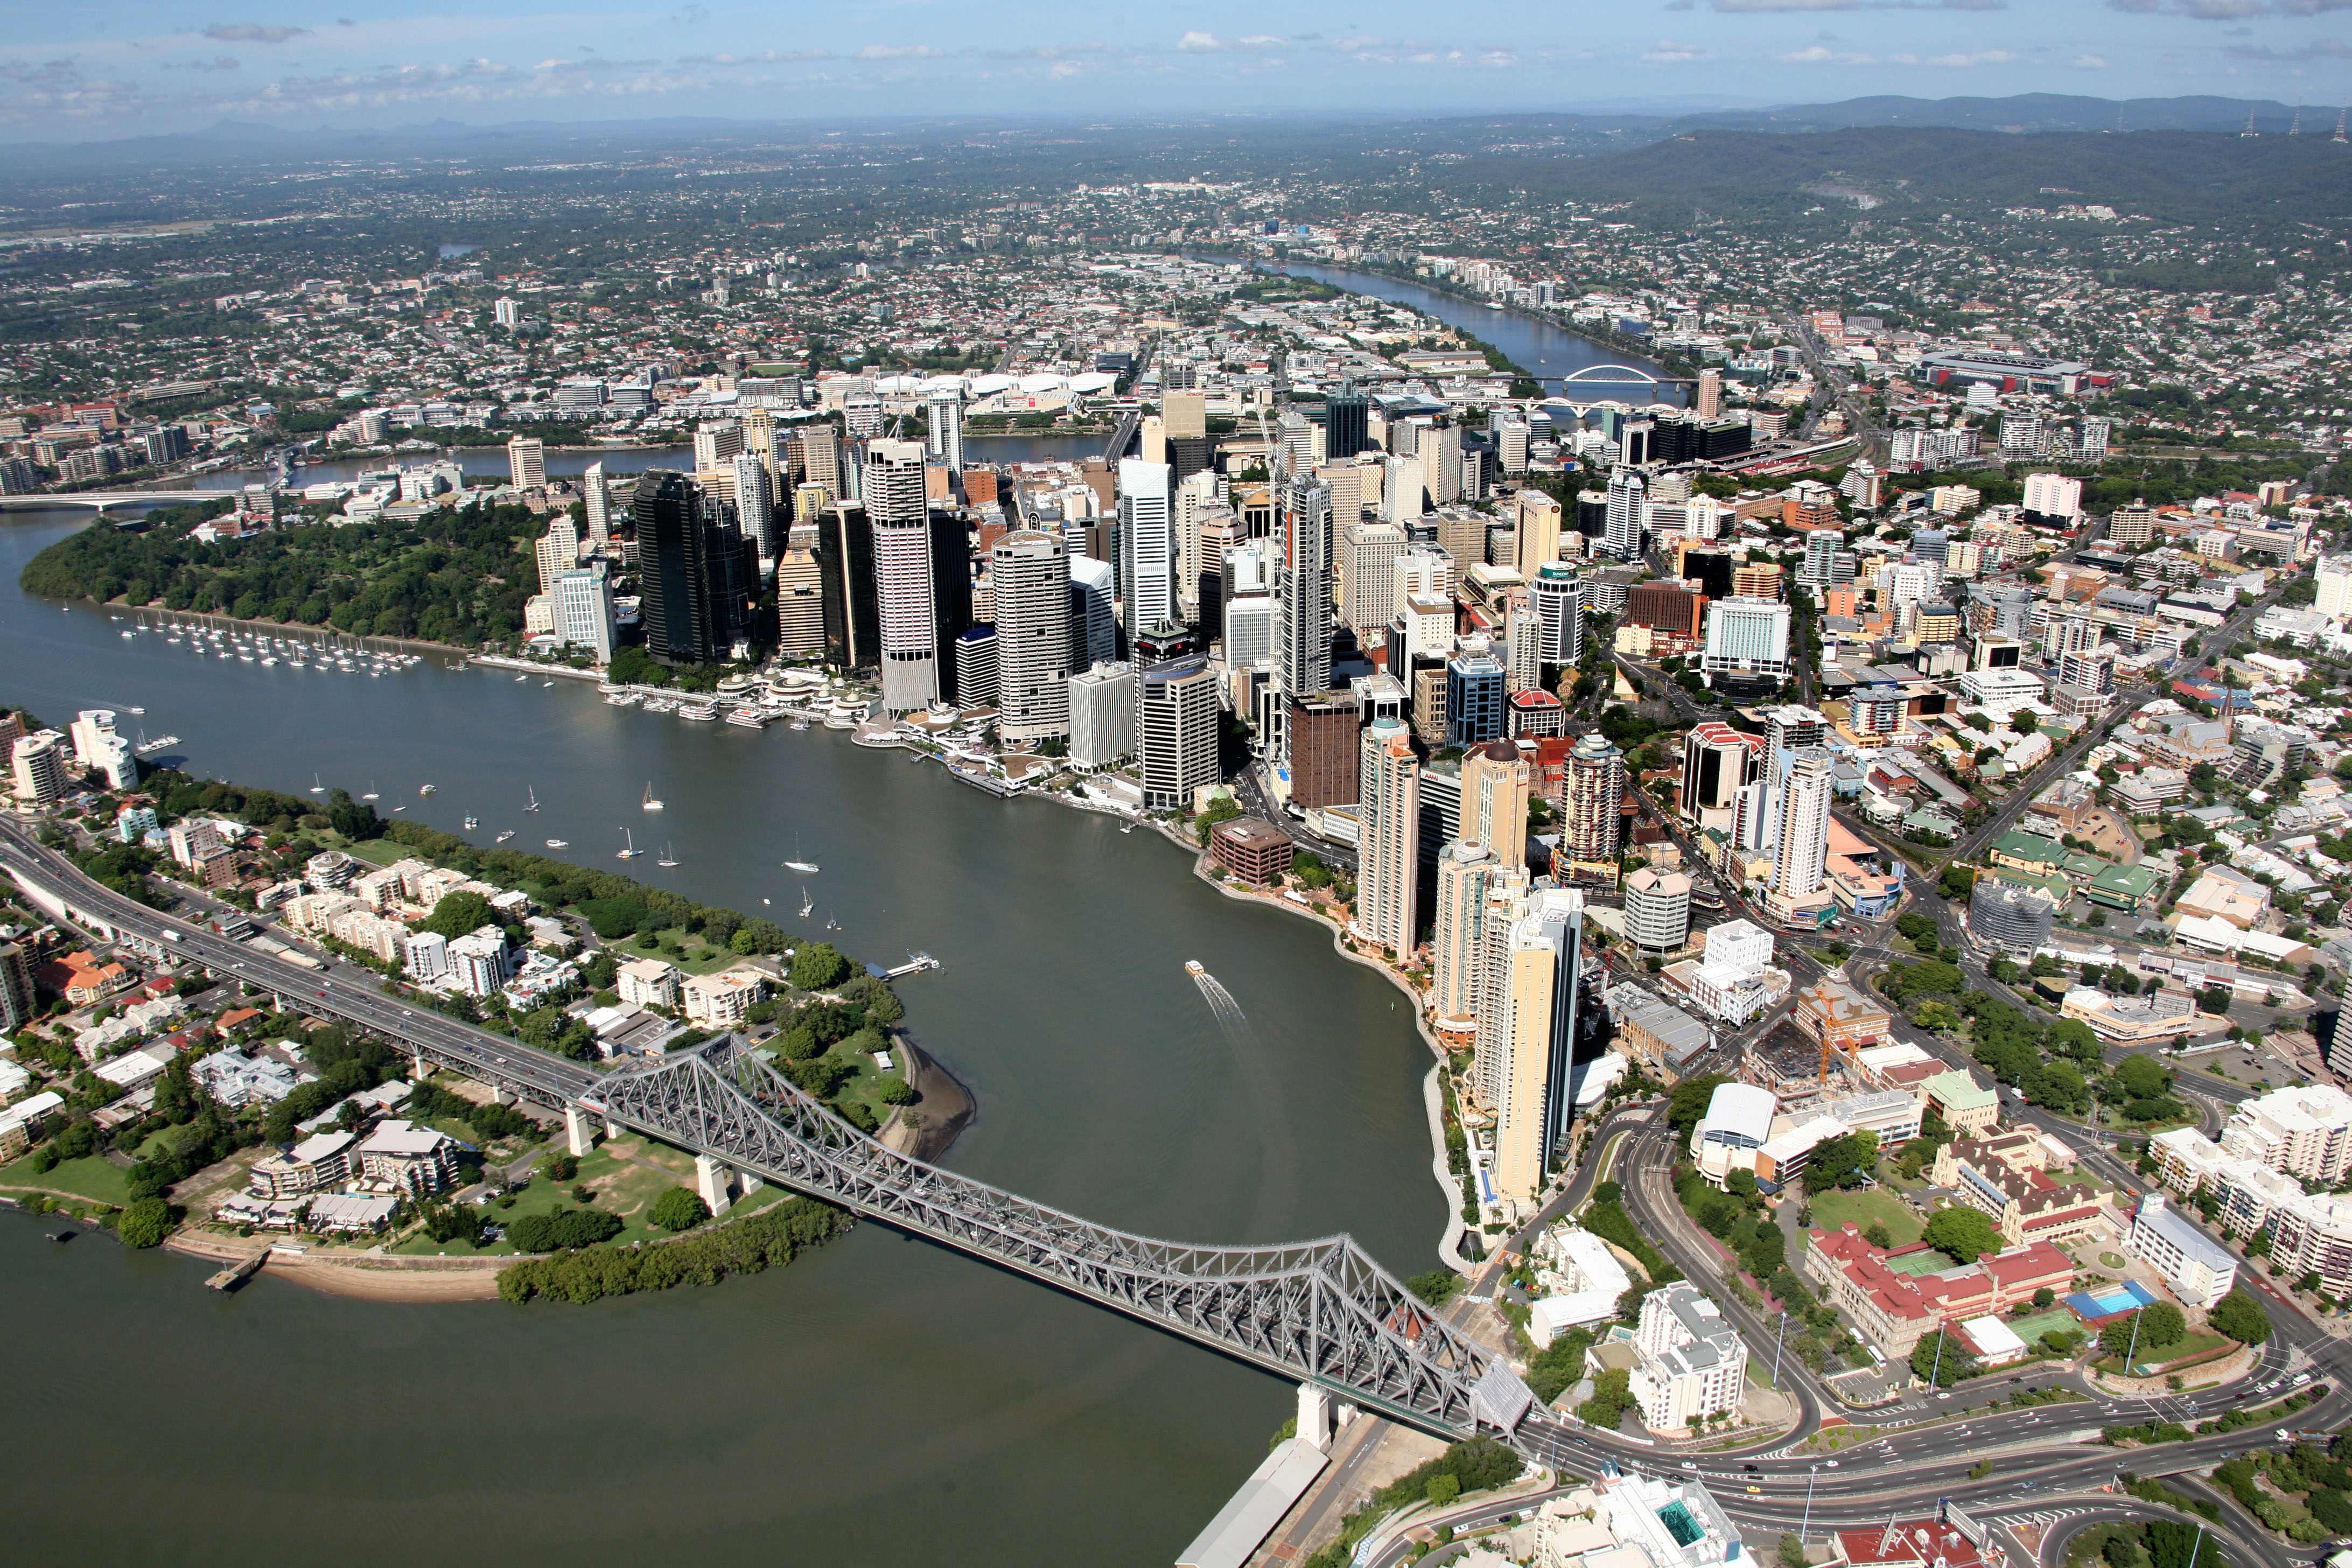 Confidence in the potential of Queensland's property market is on the rise